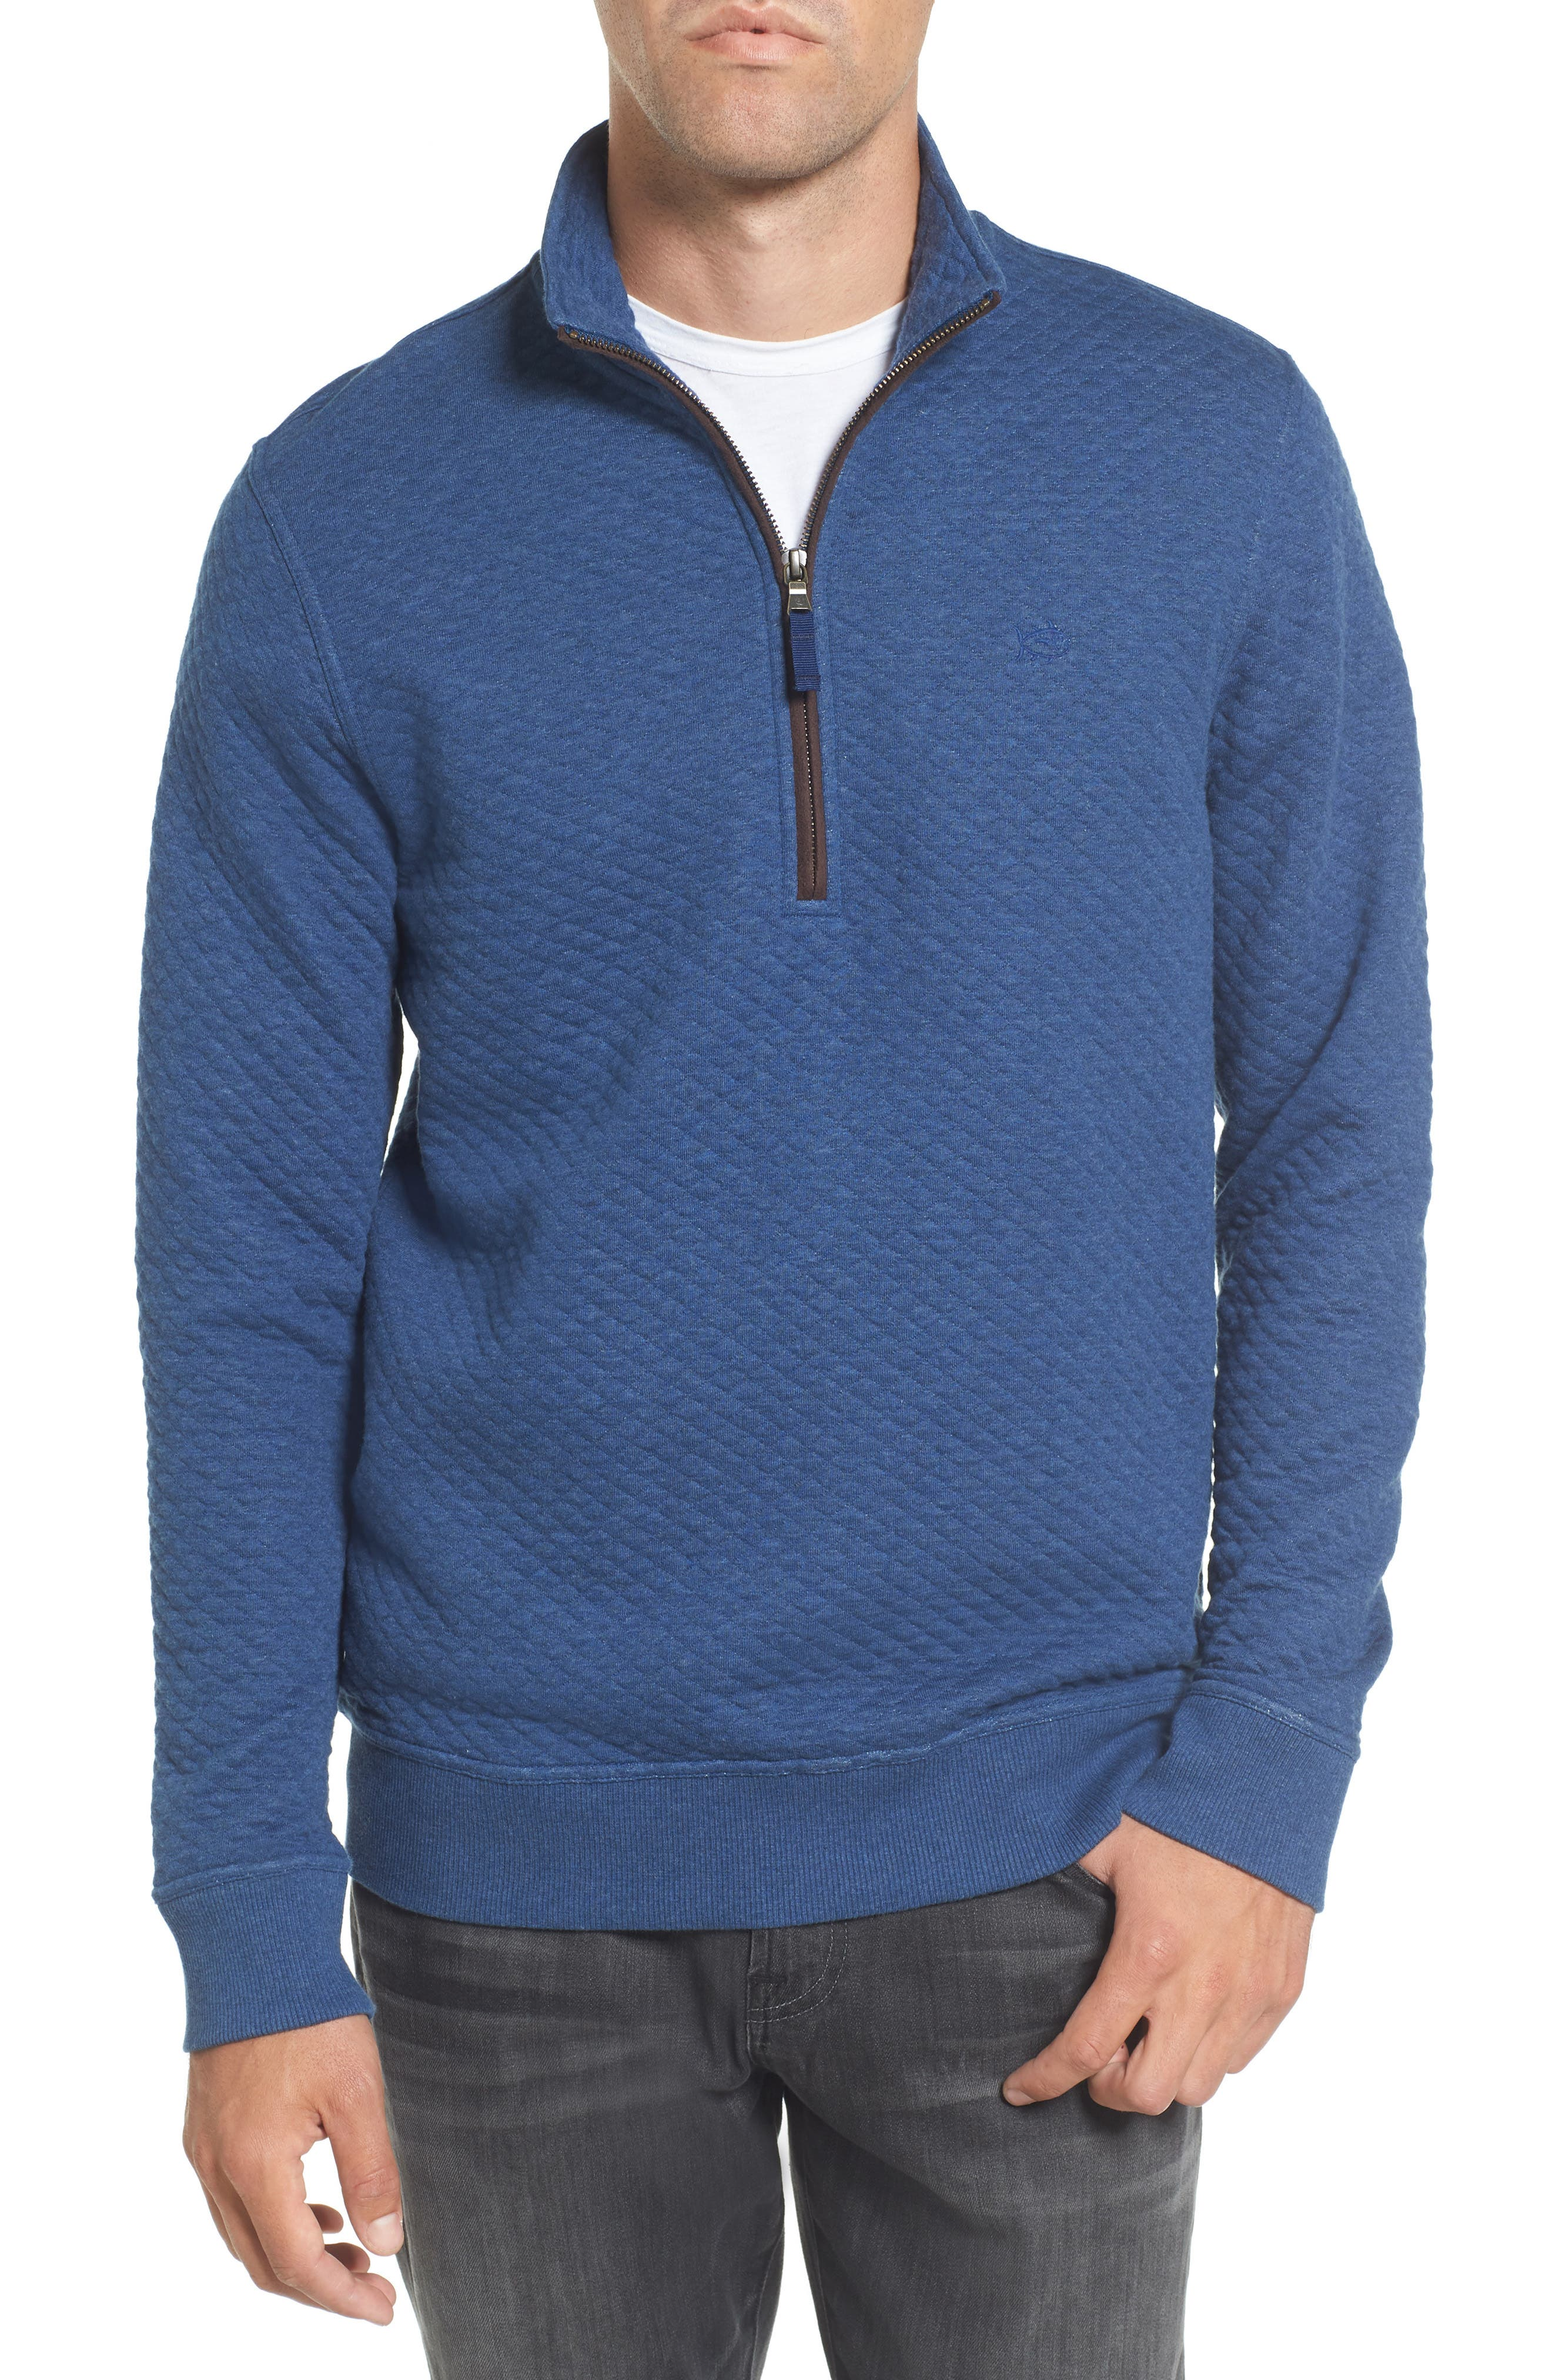 Alternate Image 1 Selected - Southern Tide Sundown Quilted Quarter Zip Pullover